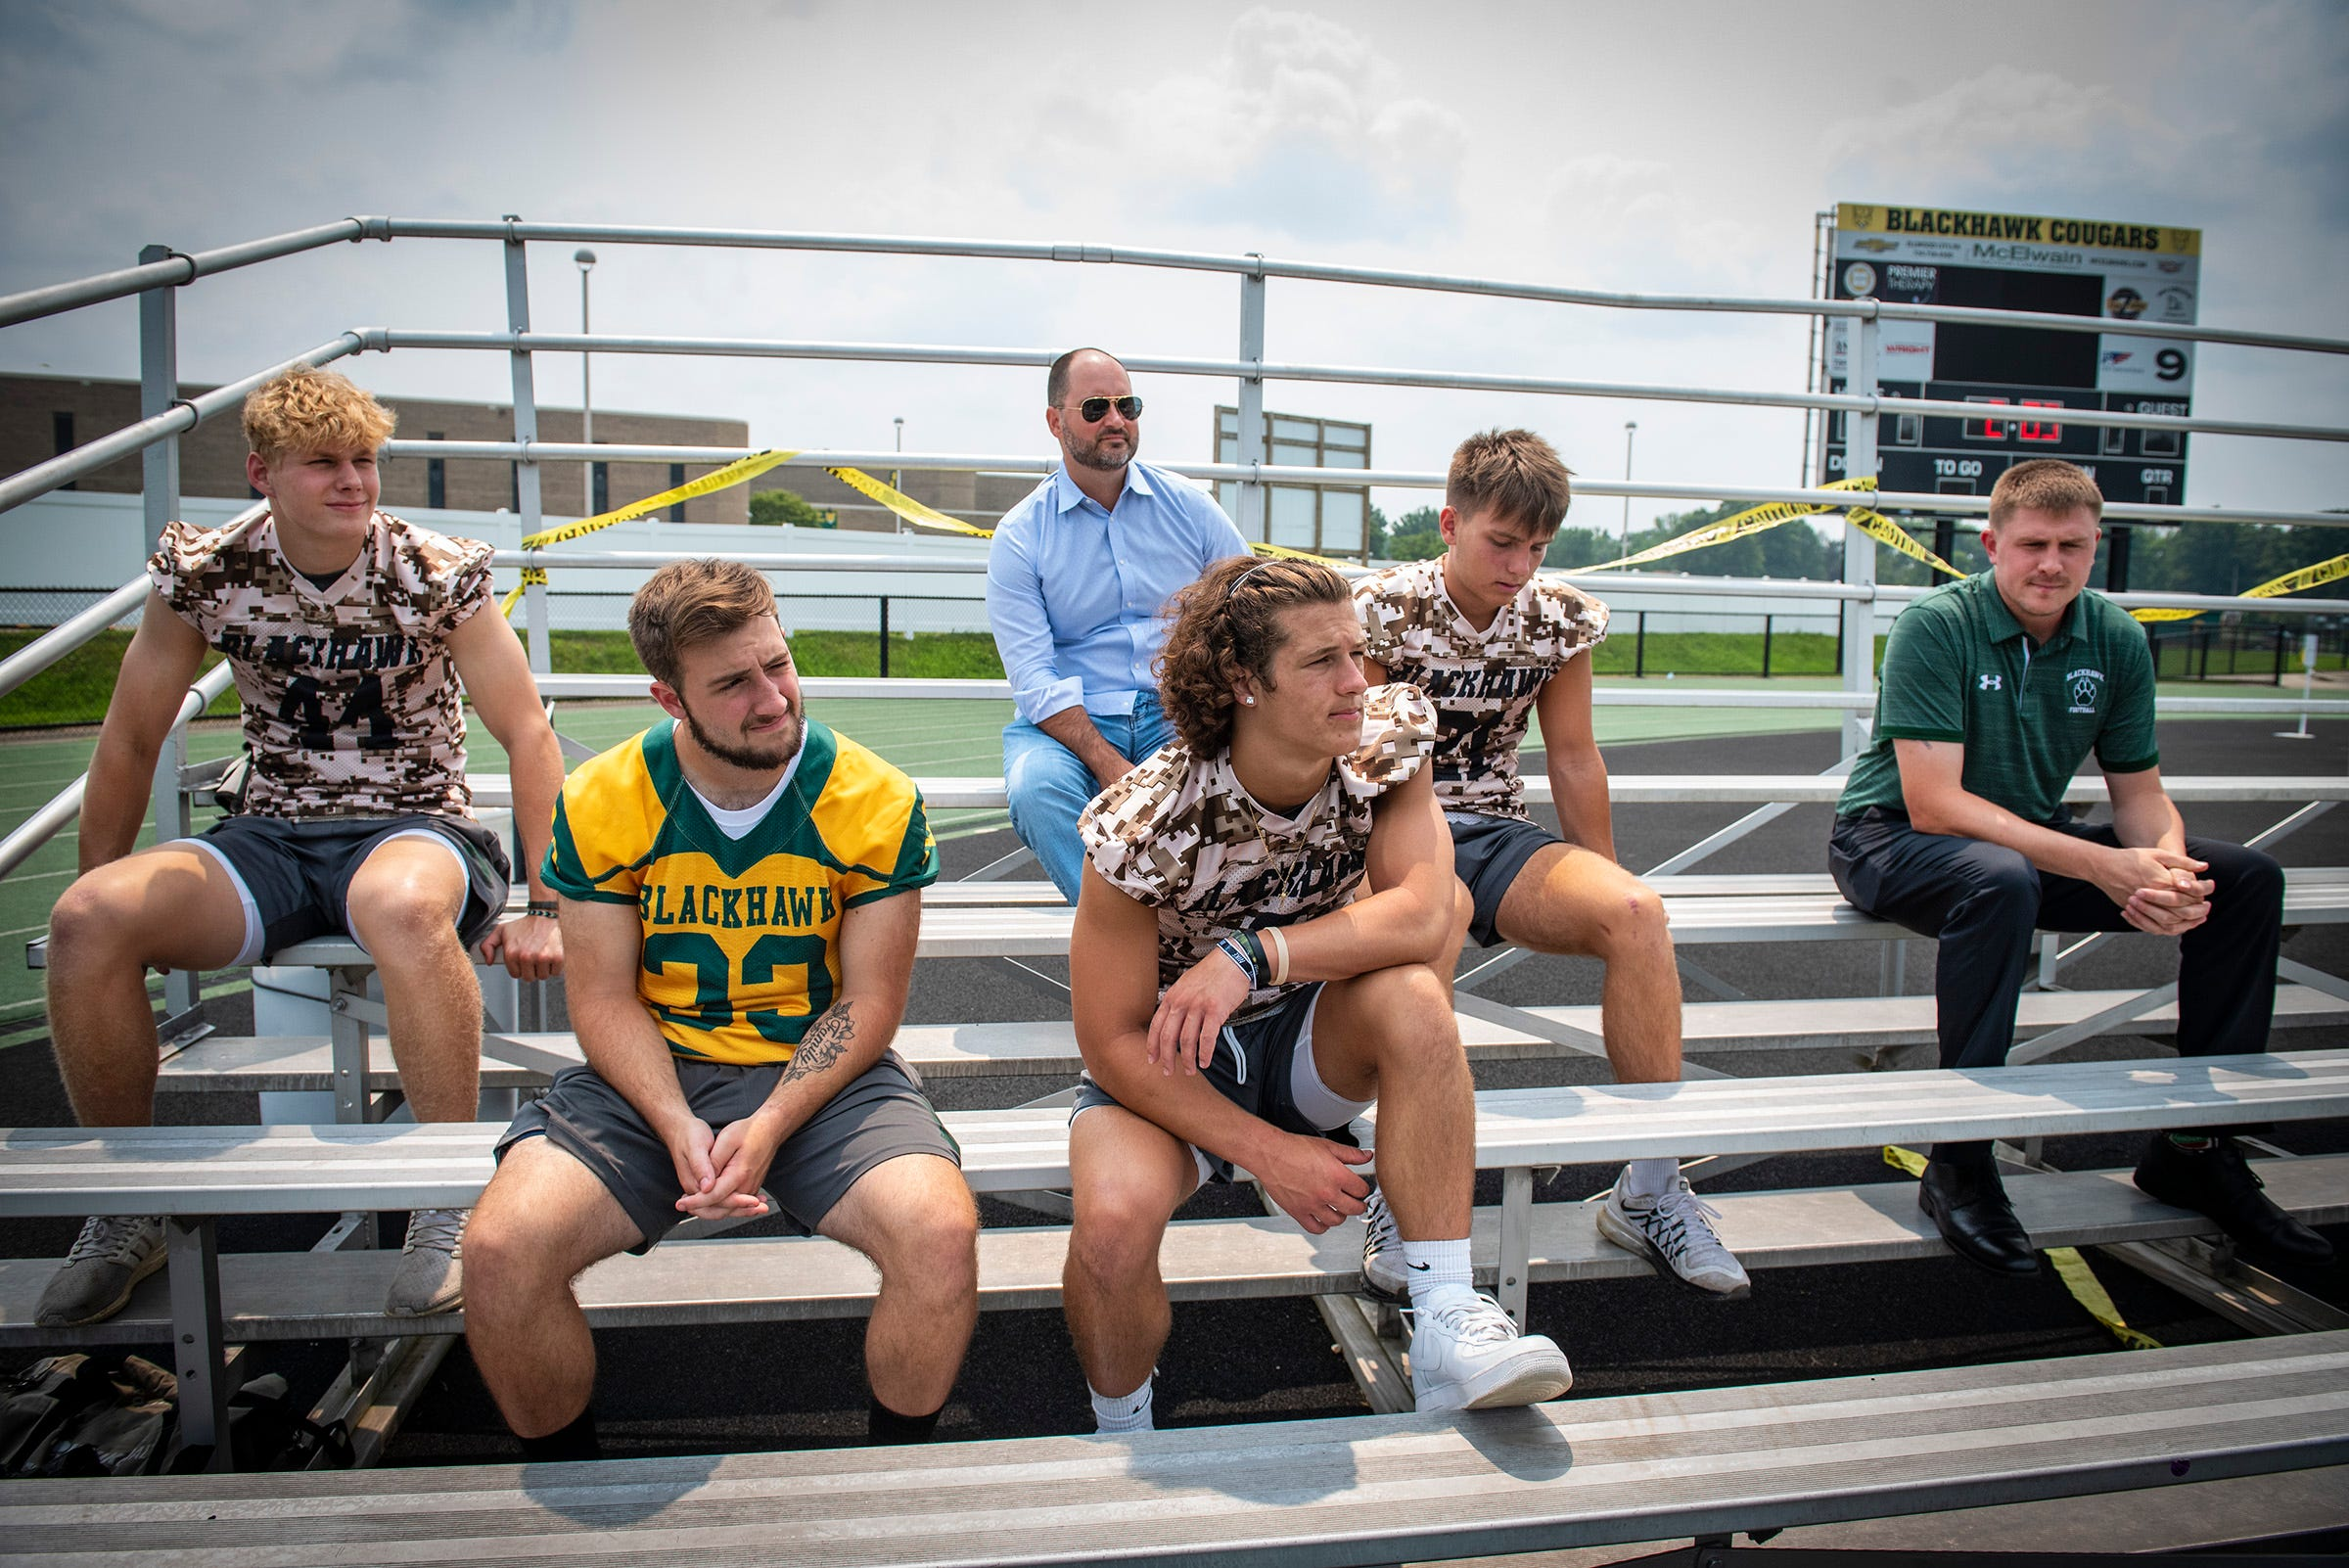 Introducing: Talking Tykes, catching up with the youth football television stars